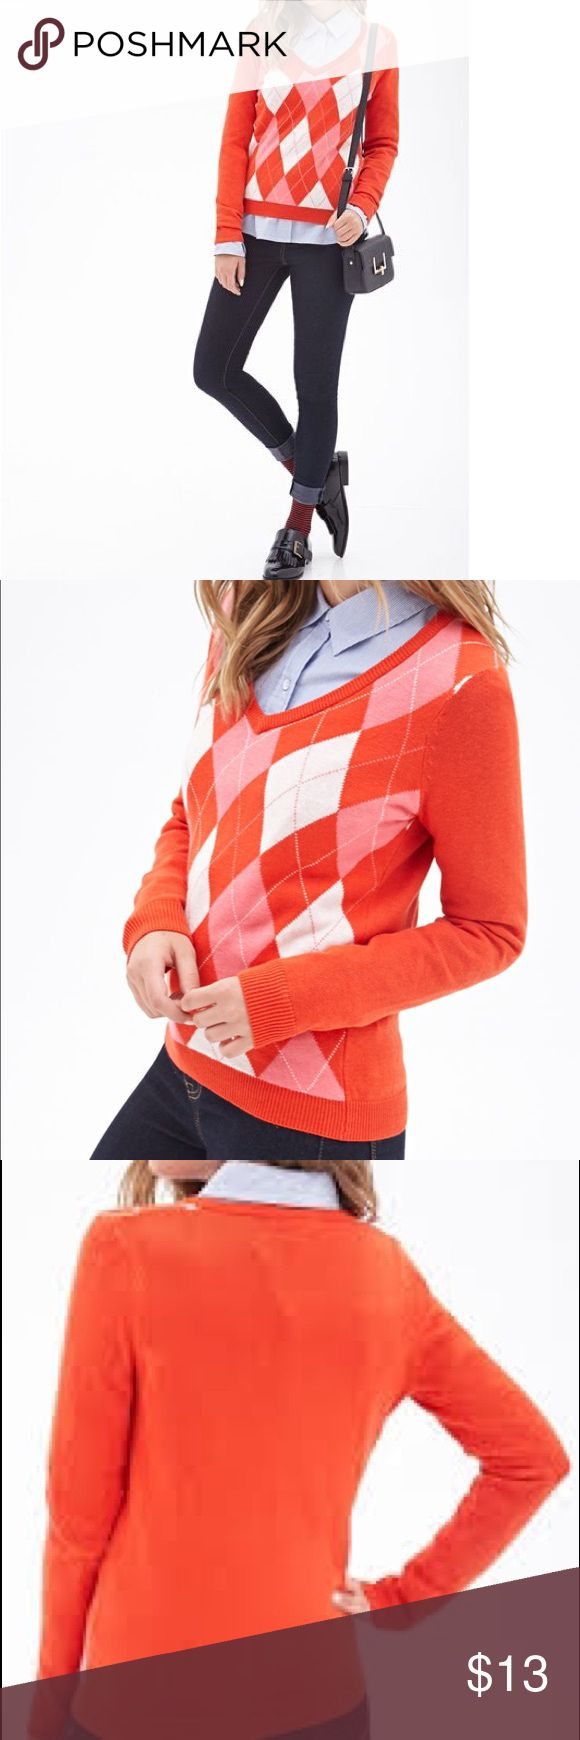 Forever 21 Argyle Sweater Preppy and trendy red argyle sweater. Great condition, only worn a few times. Feel free to make an offer using the offer tab❣️ Forever 21 Sweaters V-Necks